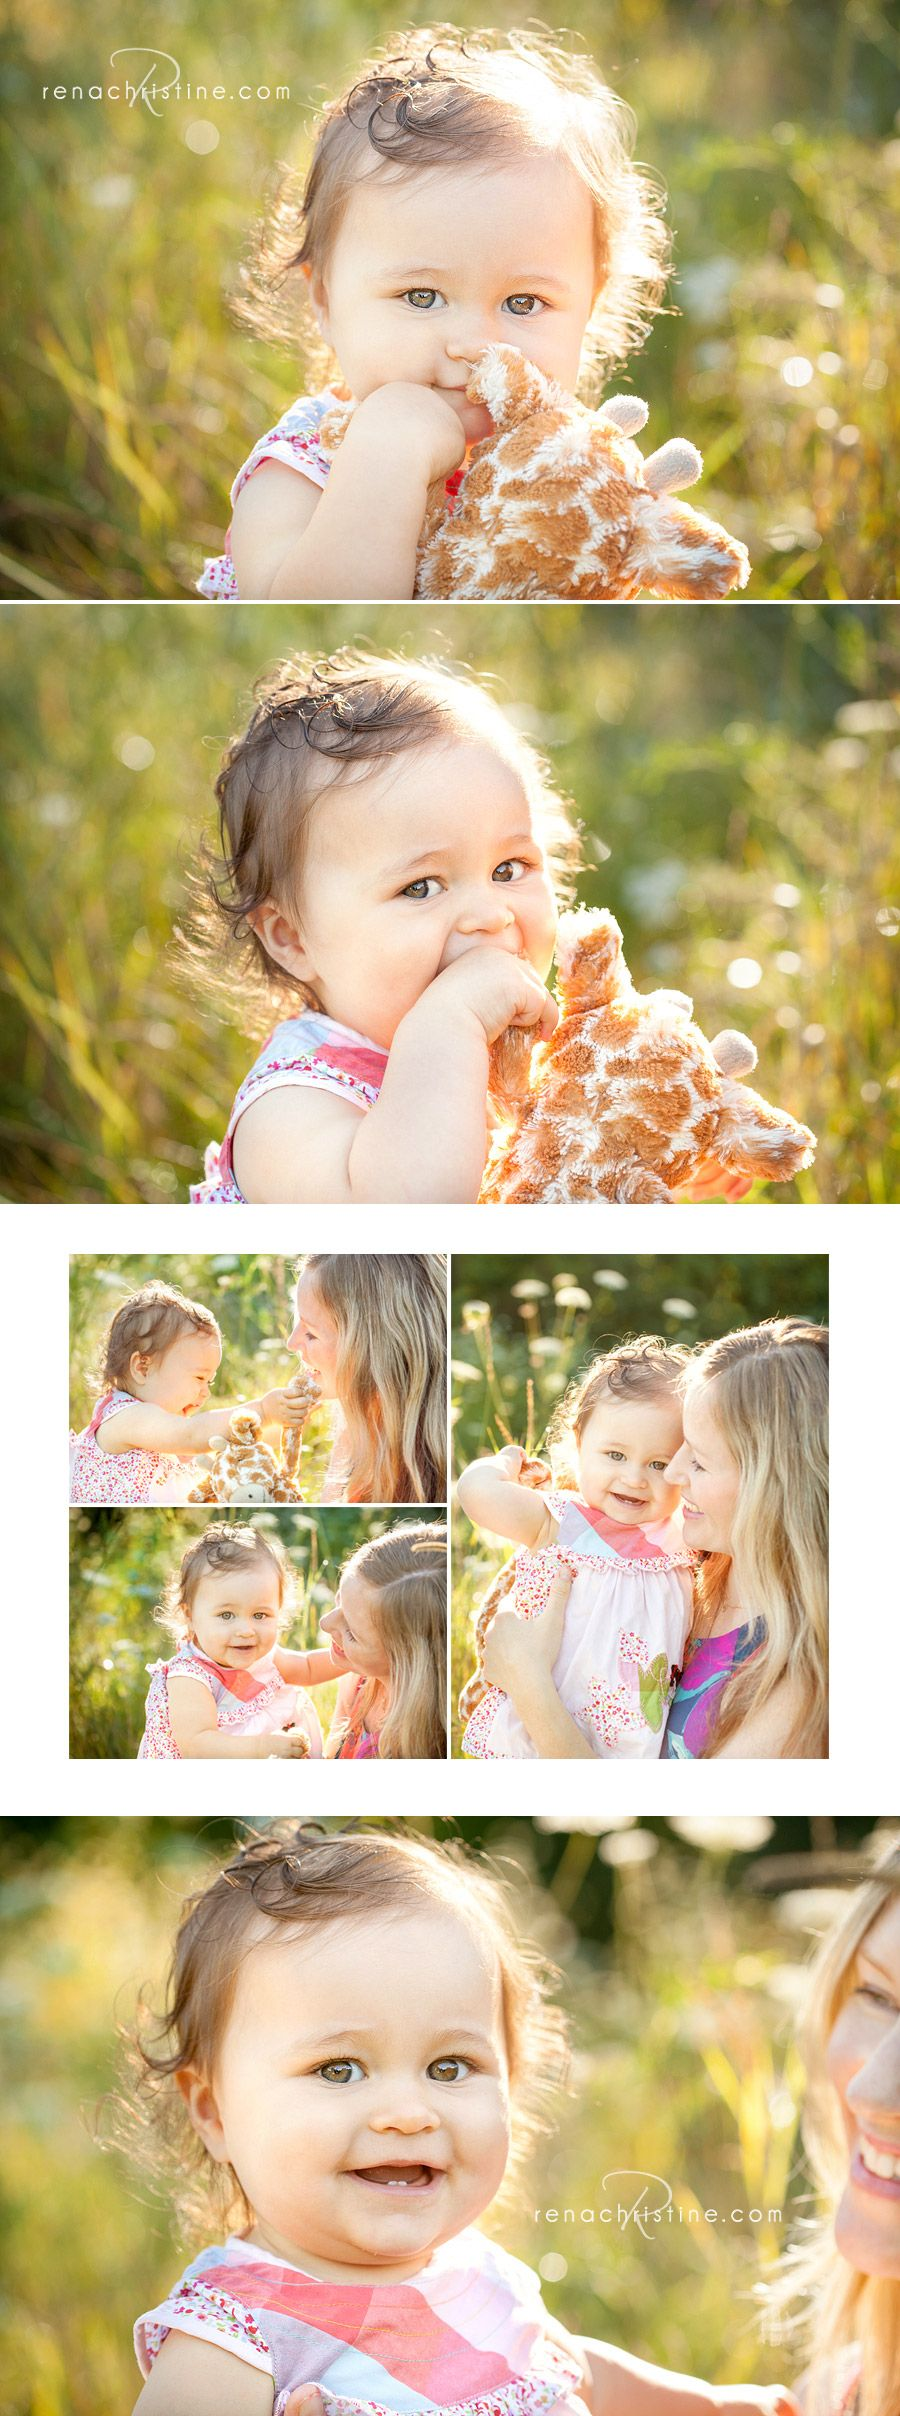 Adelaide Baby photography, Toddler photography, Children